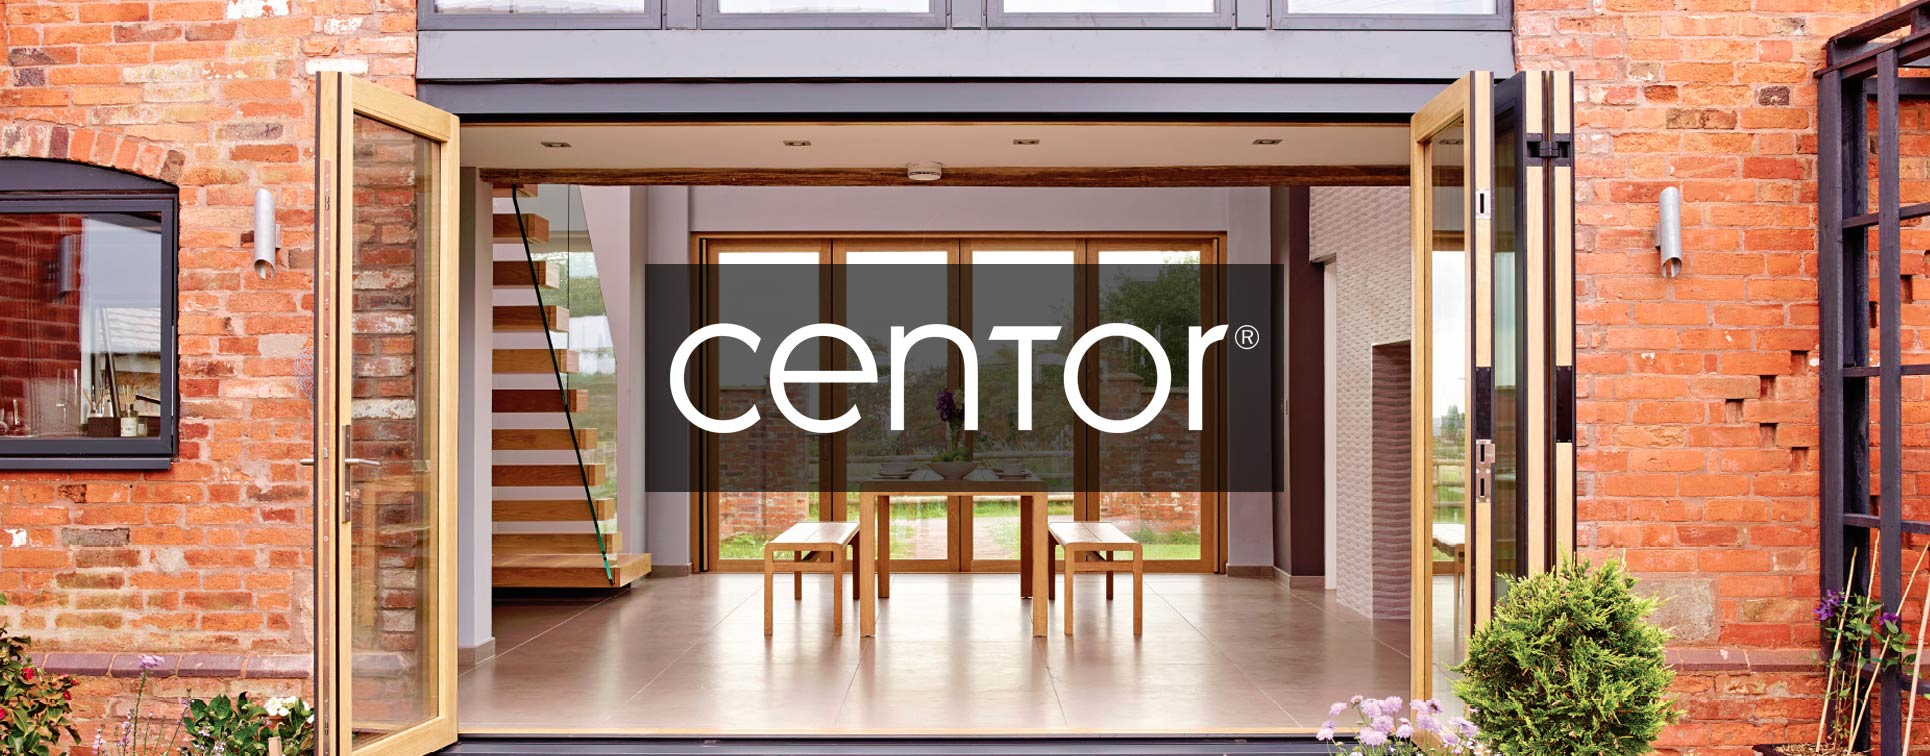 Centor integrated doors installed in a converted barn Northwich, UK.